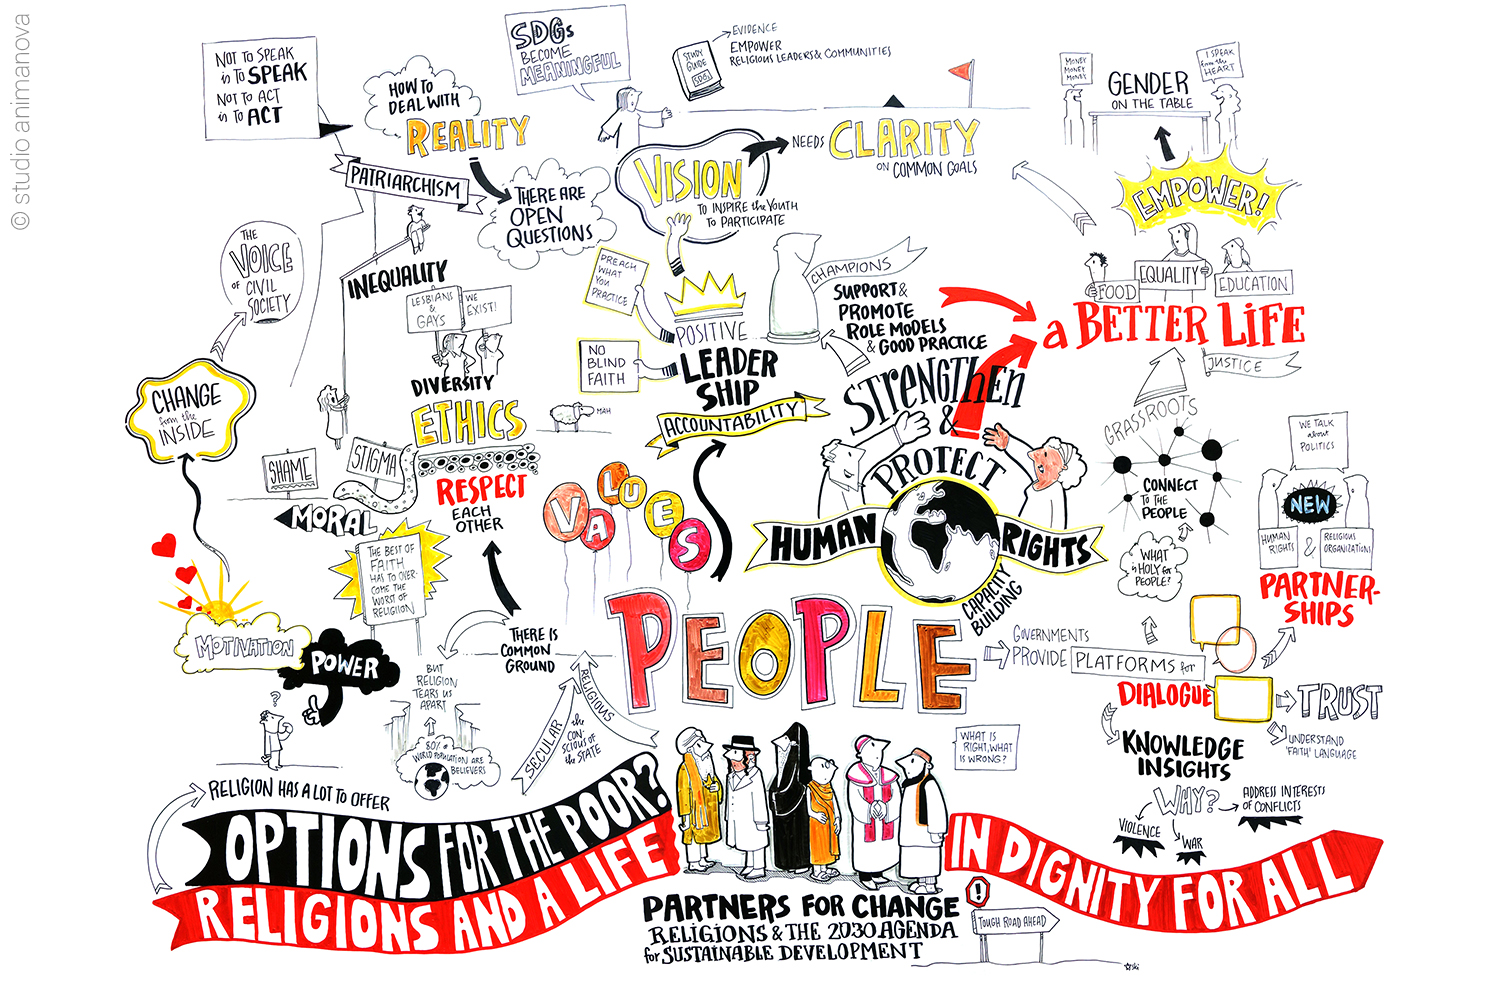 Graphic Recording SDG & Religion